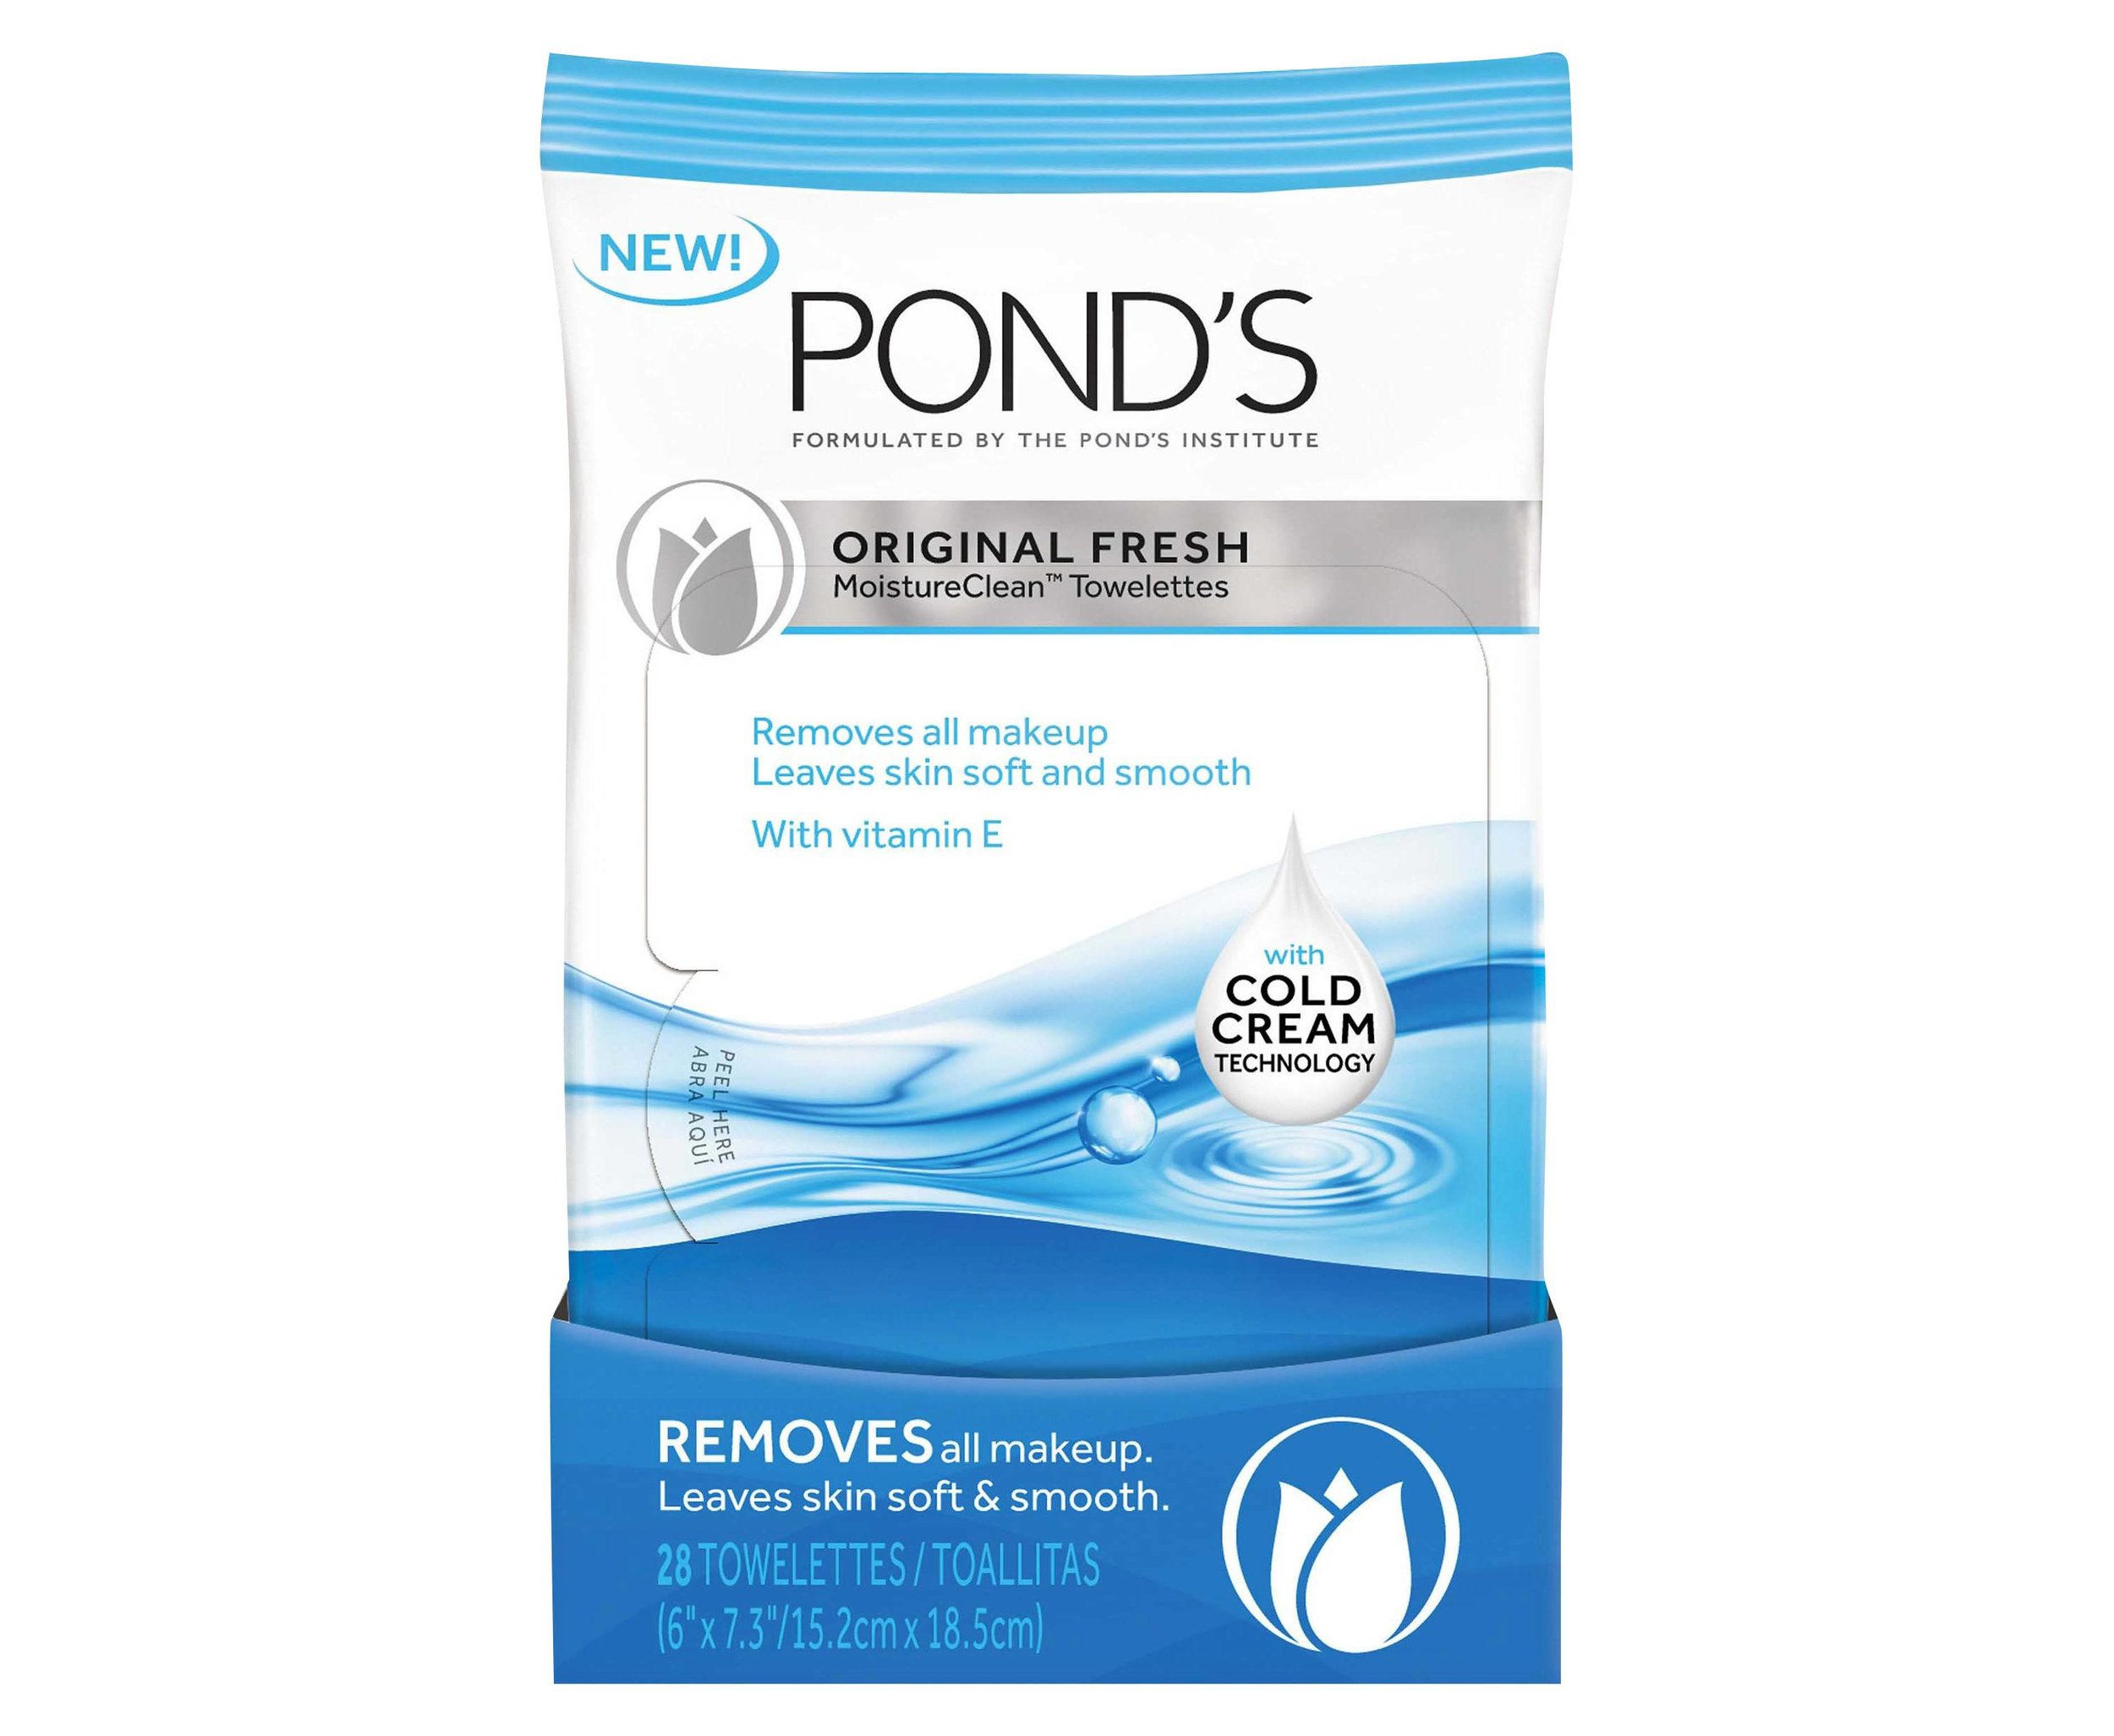 Ponds face wipes